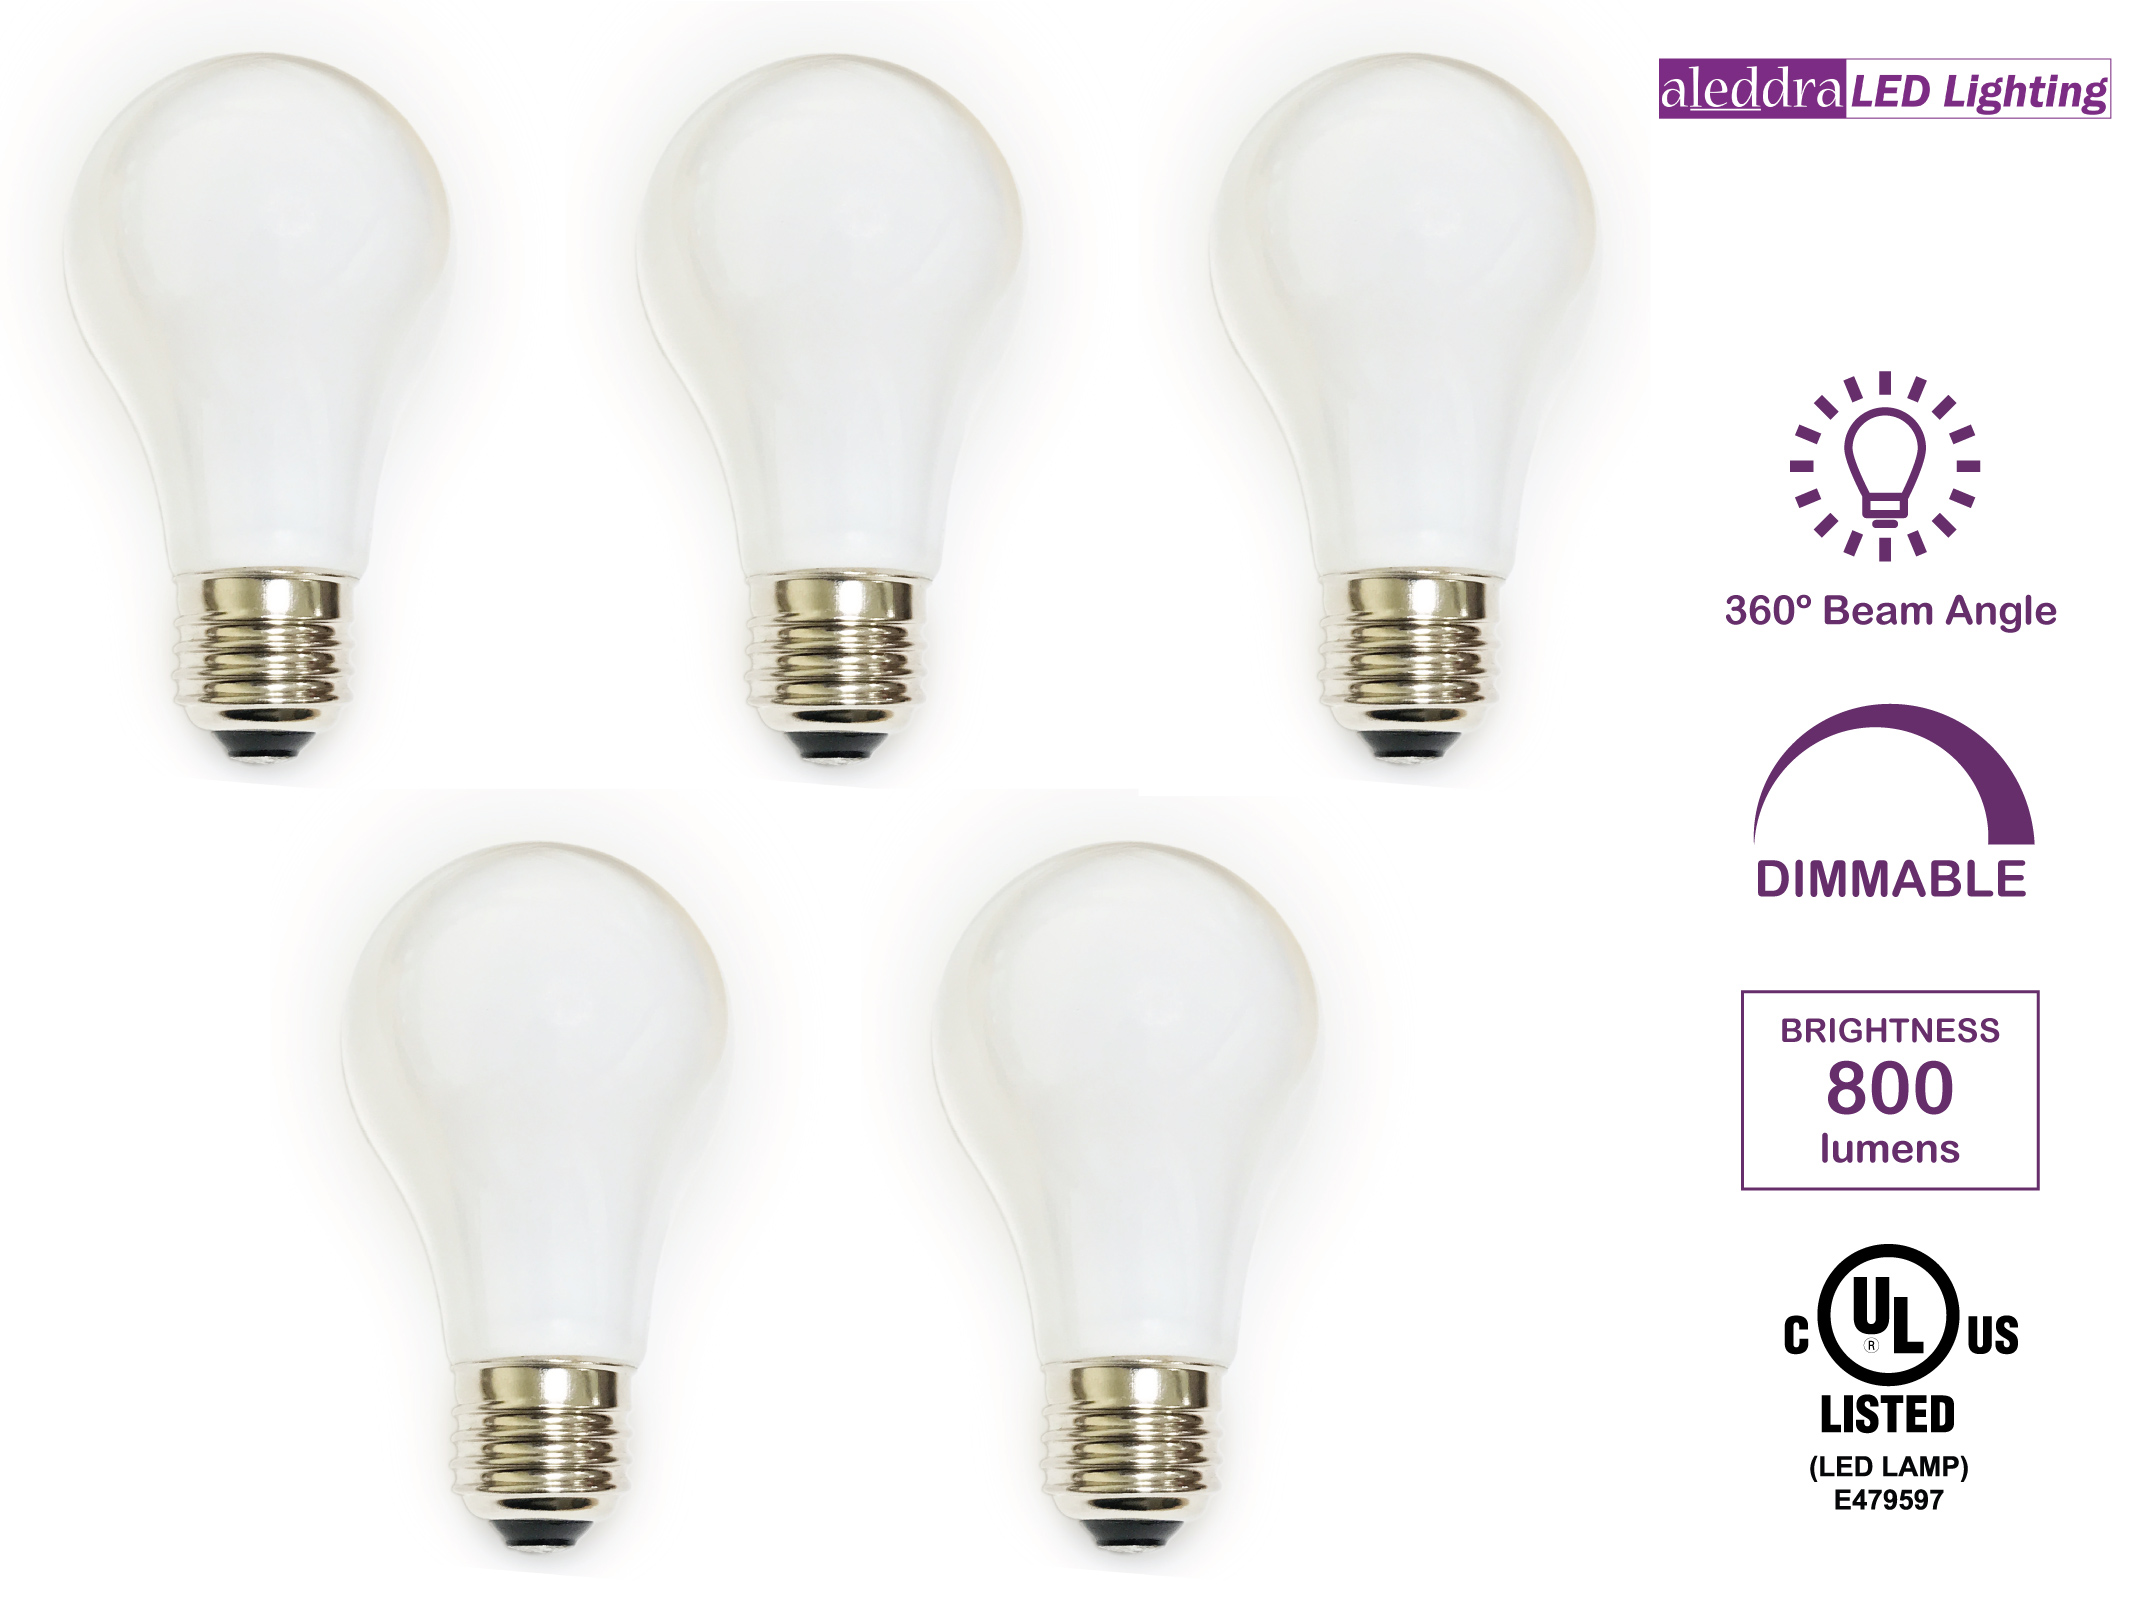 Aleddra Omni A19 LED Light Bulb, Screw In, Dimmable, 8W (60W